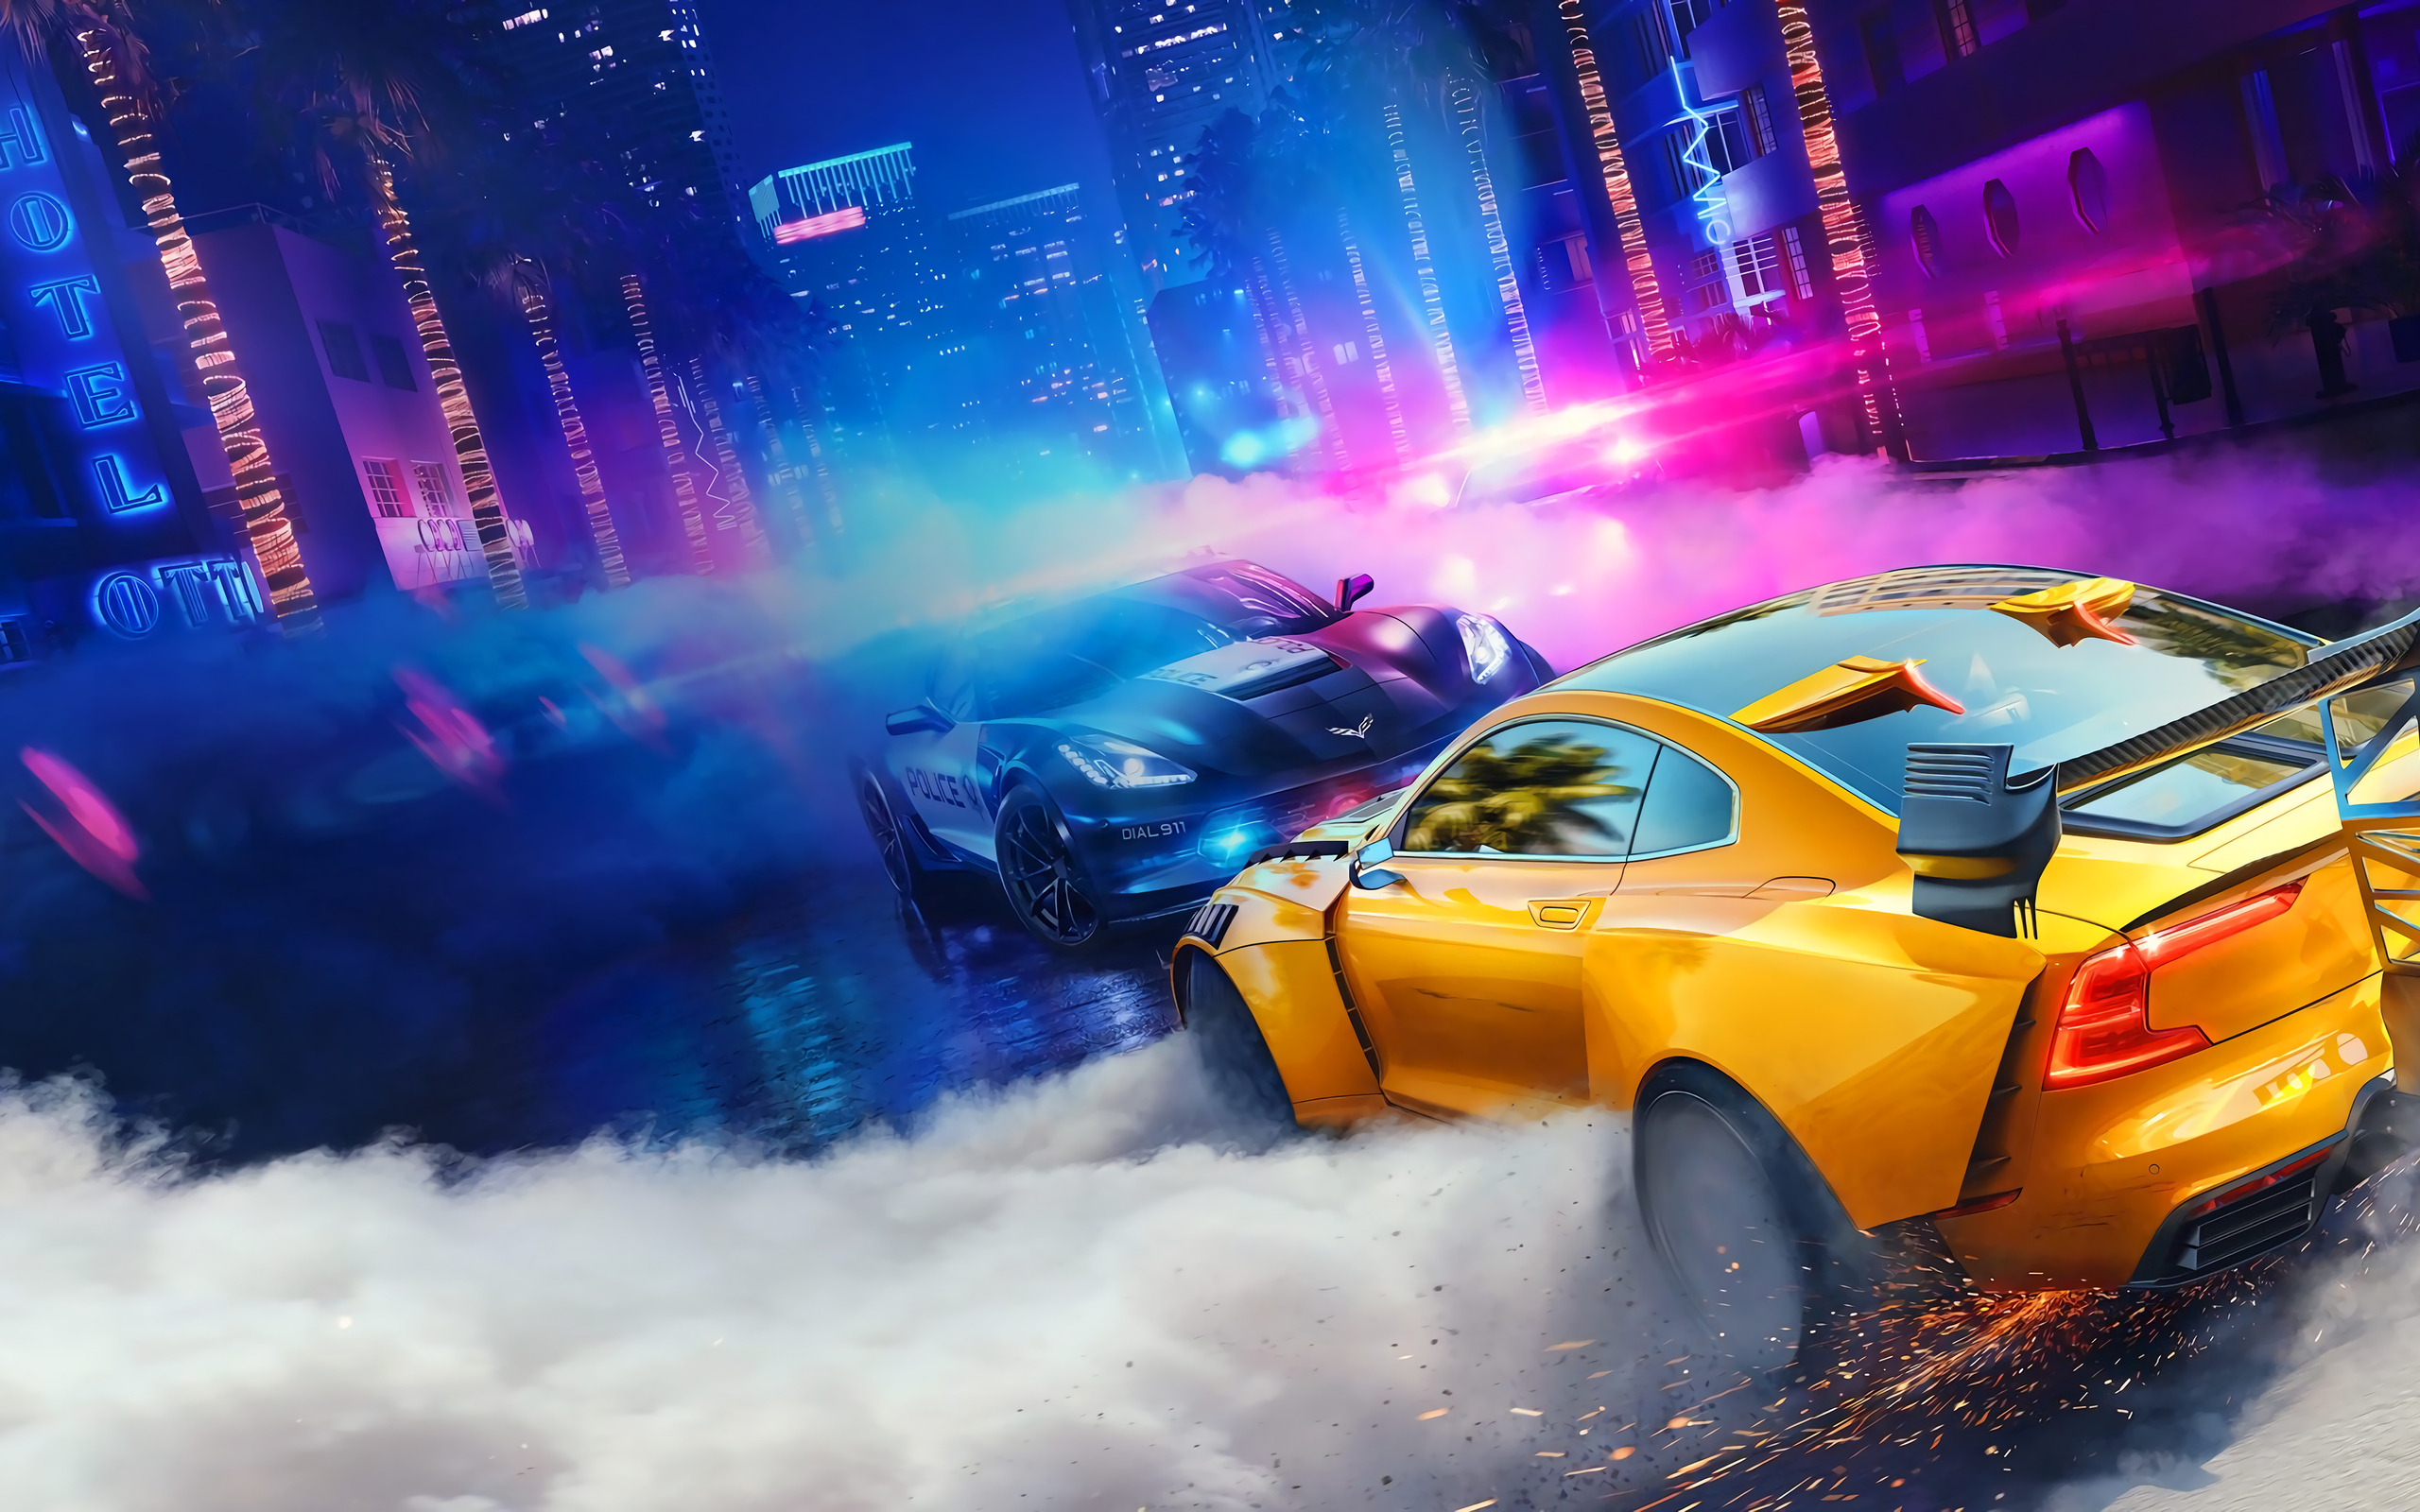 2560x1600 Need For Speed Heat 2560x1600 Resolution HD 4k